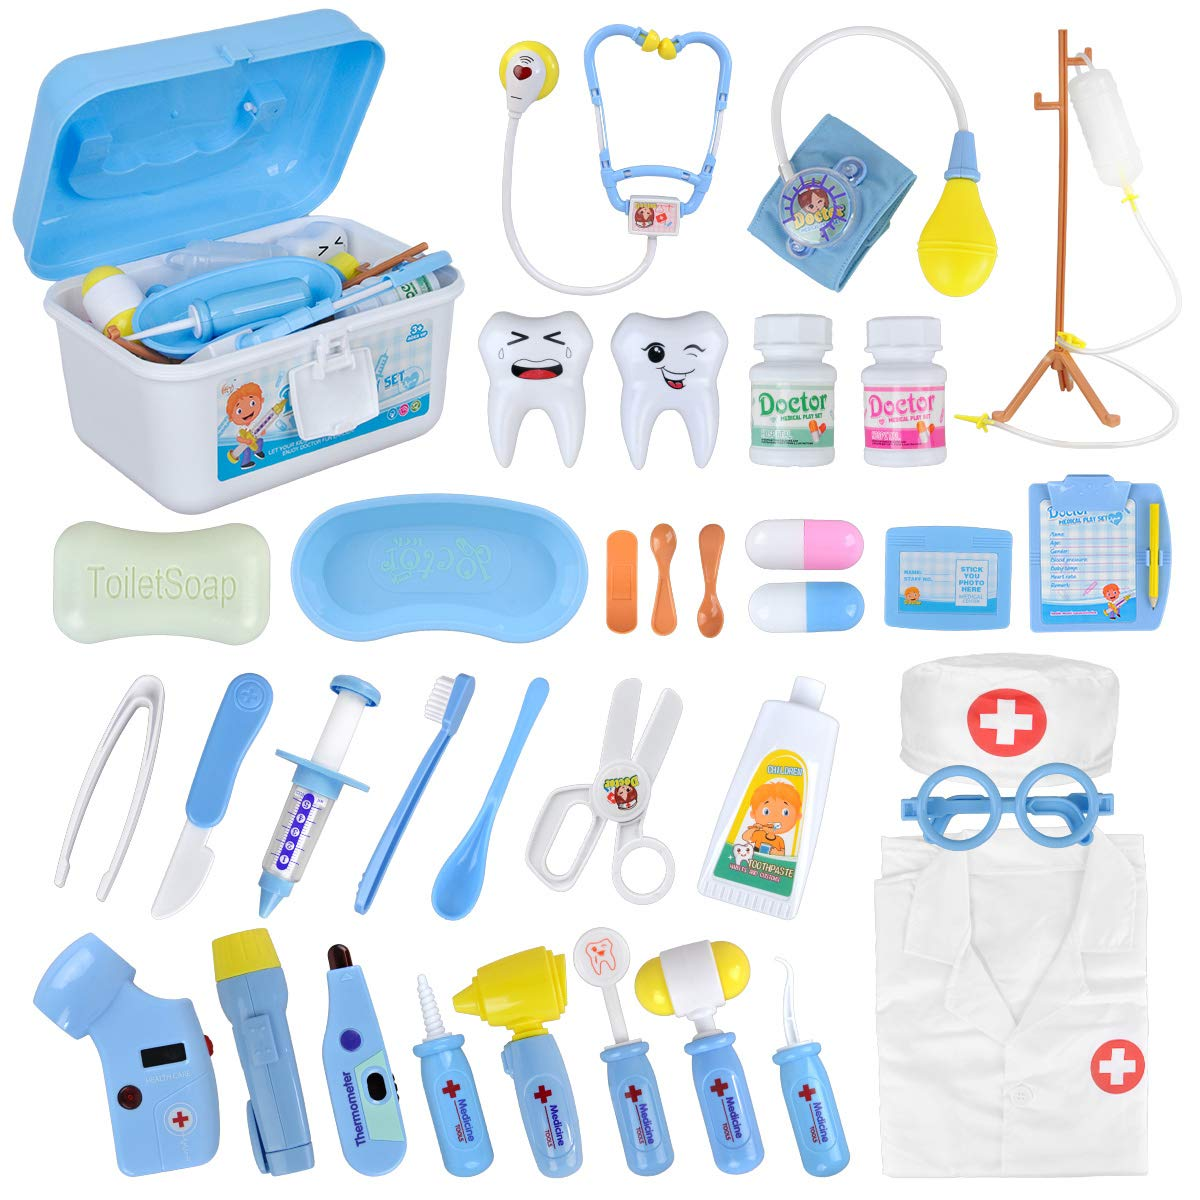 35 Piece Doctors Kit Toy Medical Playset